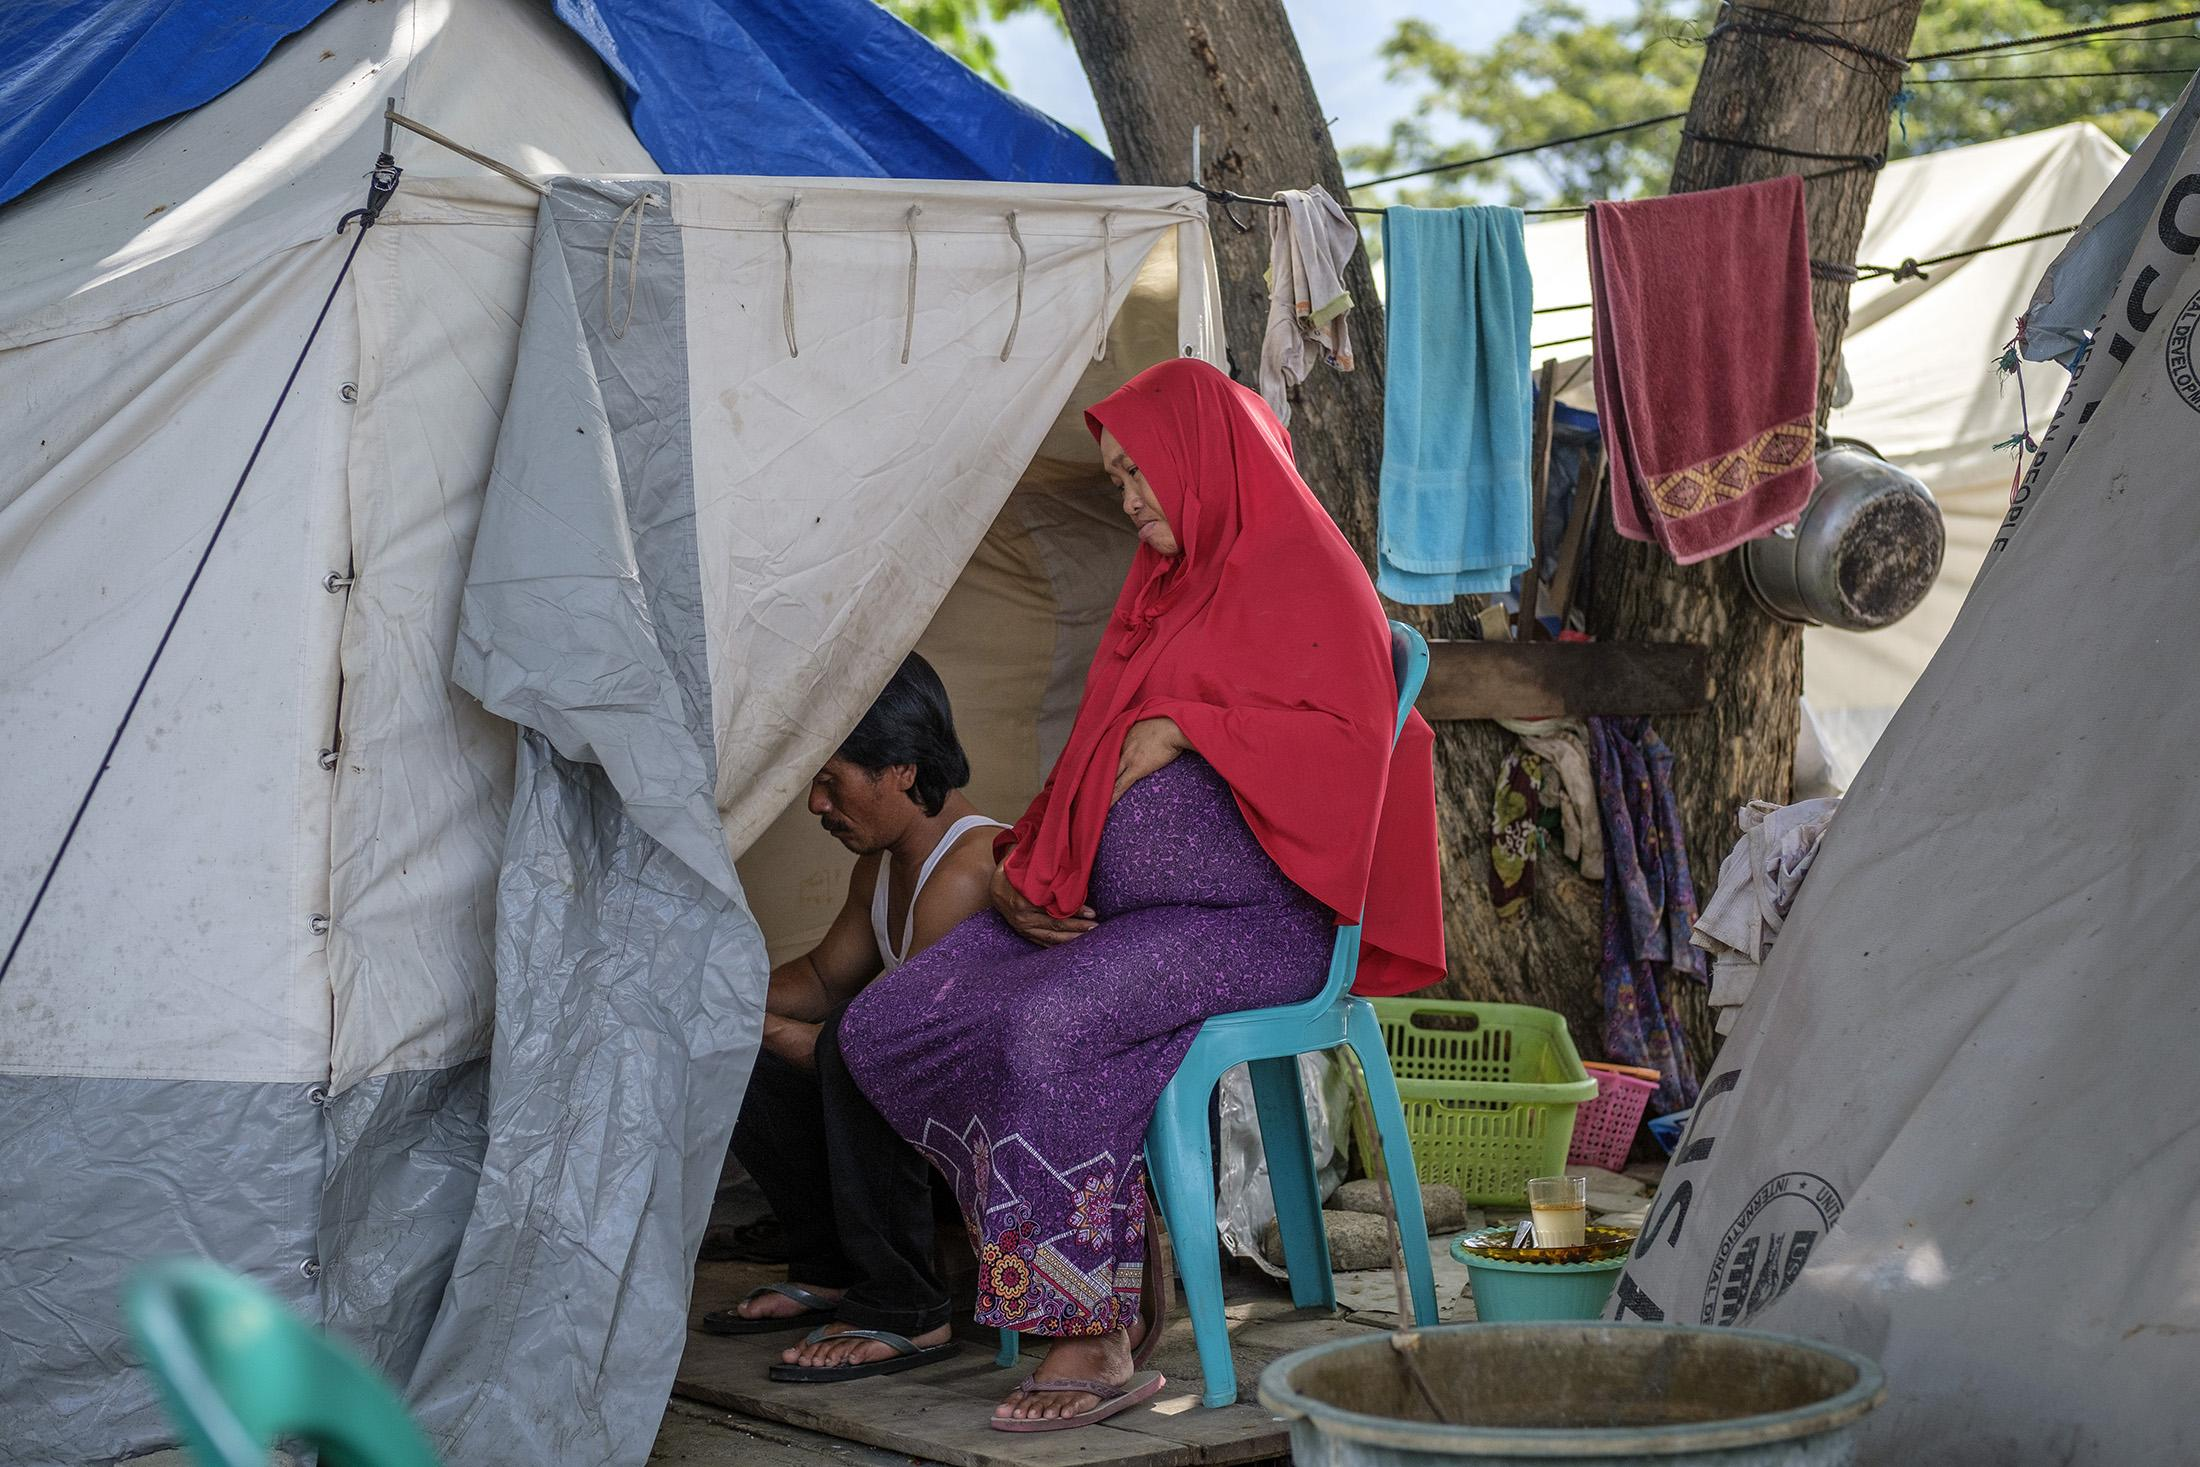 6 months after the magnitude 7.5 earthquake triggered a tsunami, landslides and land liquefaction in Indonesia's Central Sulawesi province on September 28, 2018, many are still living in Internally Displaced Persons (IDP) camps throughout the province. According to the Indonesia disaster management agency, over 4,000 people died, more than 10,000 seriously injured and in excess of 200,000 people displaced.